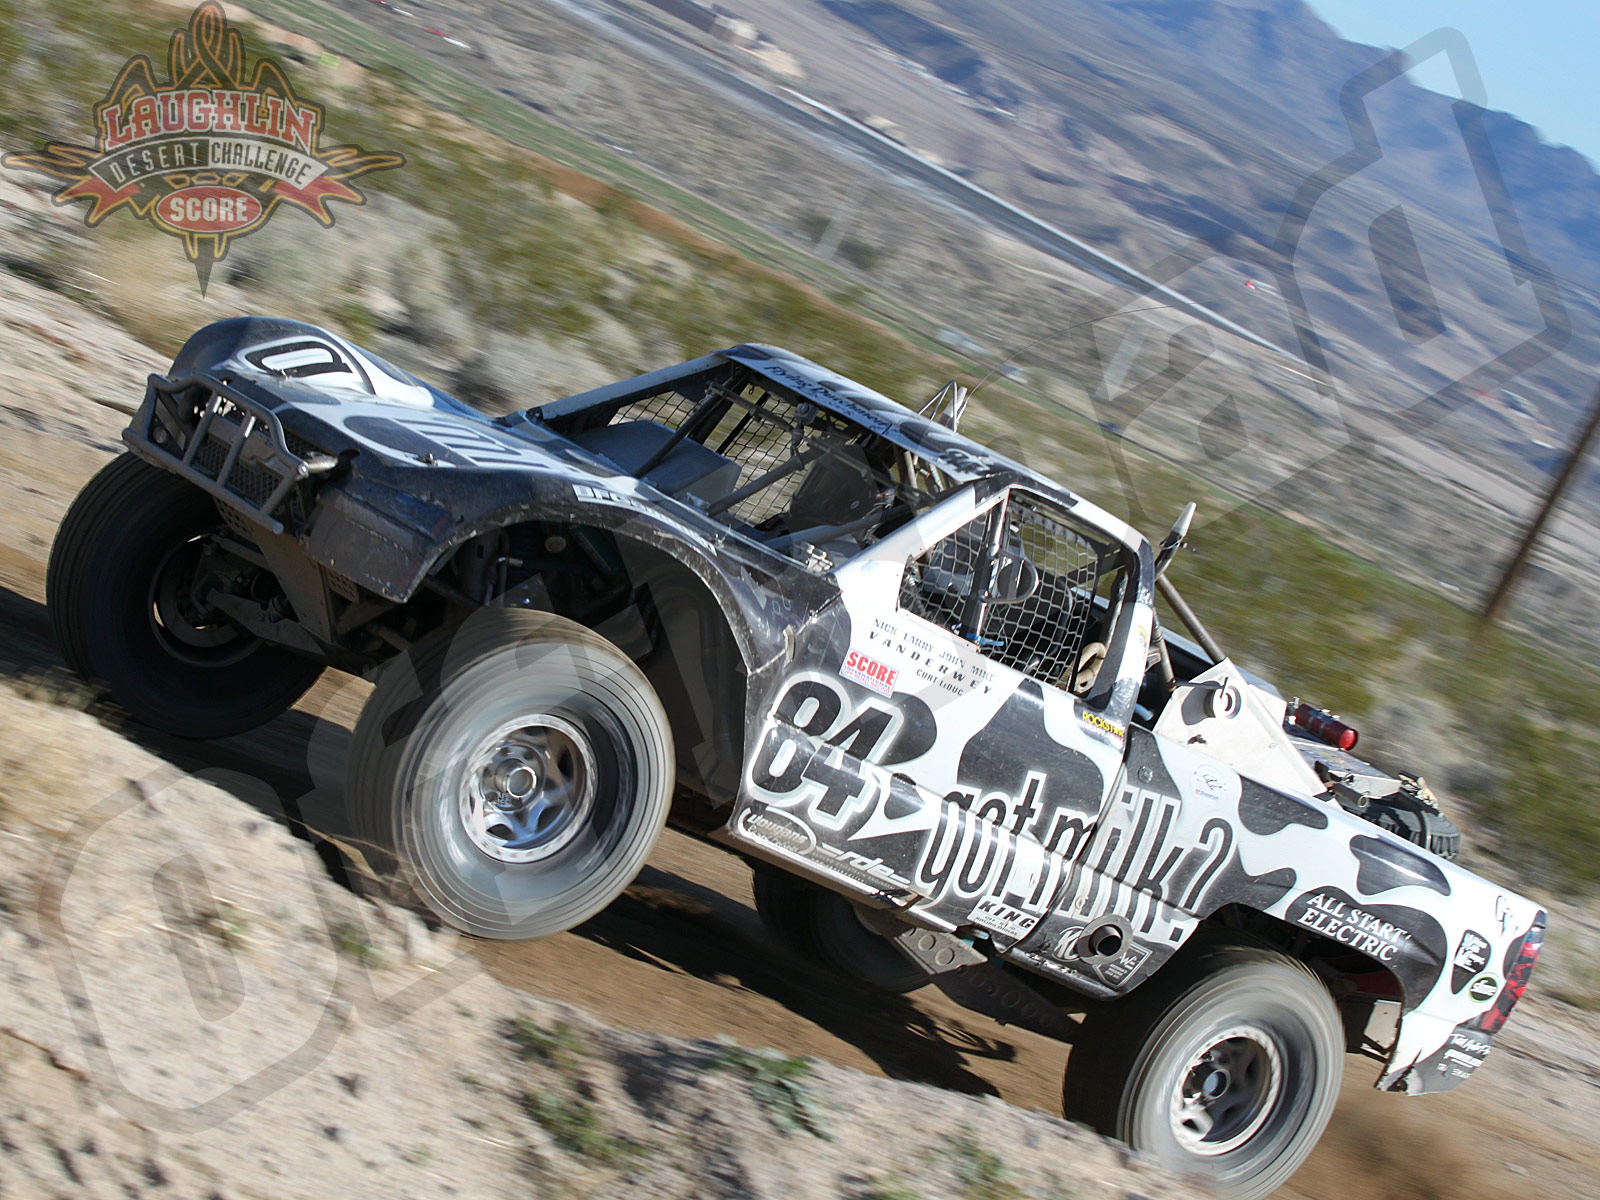 030311or 6913+2011 score laughlin desert challenge+trophy trucks sunday